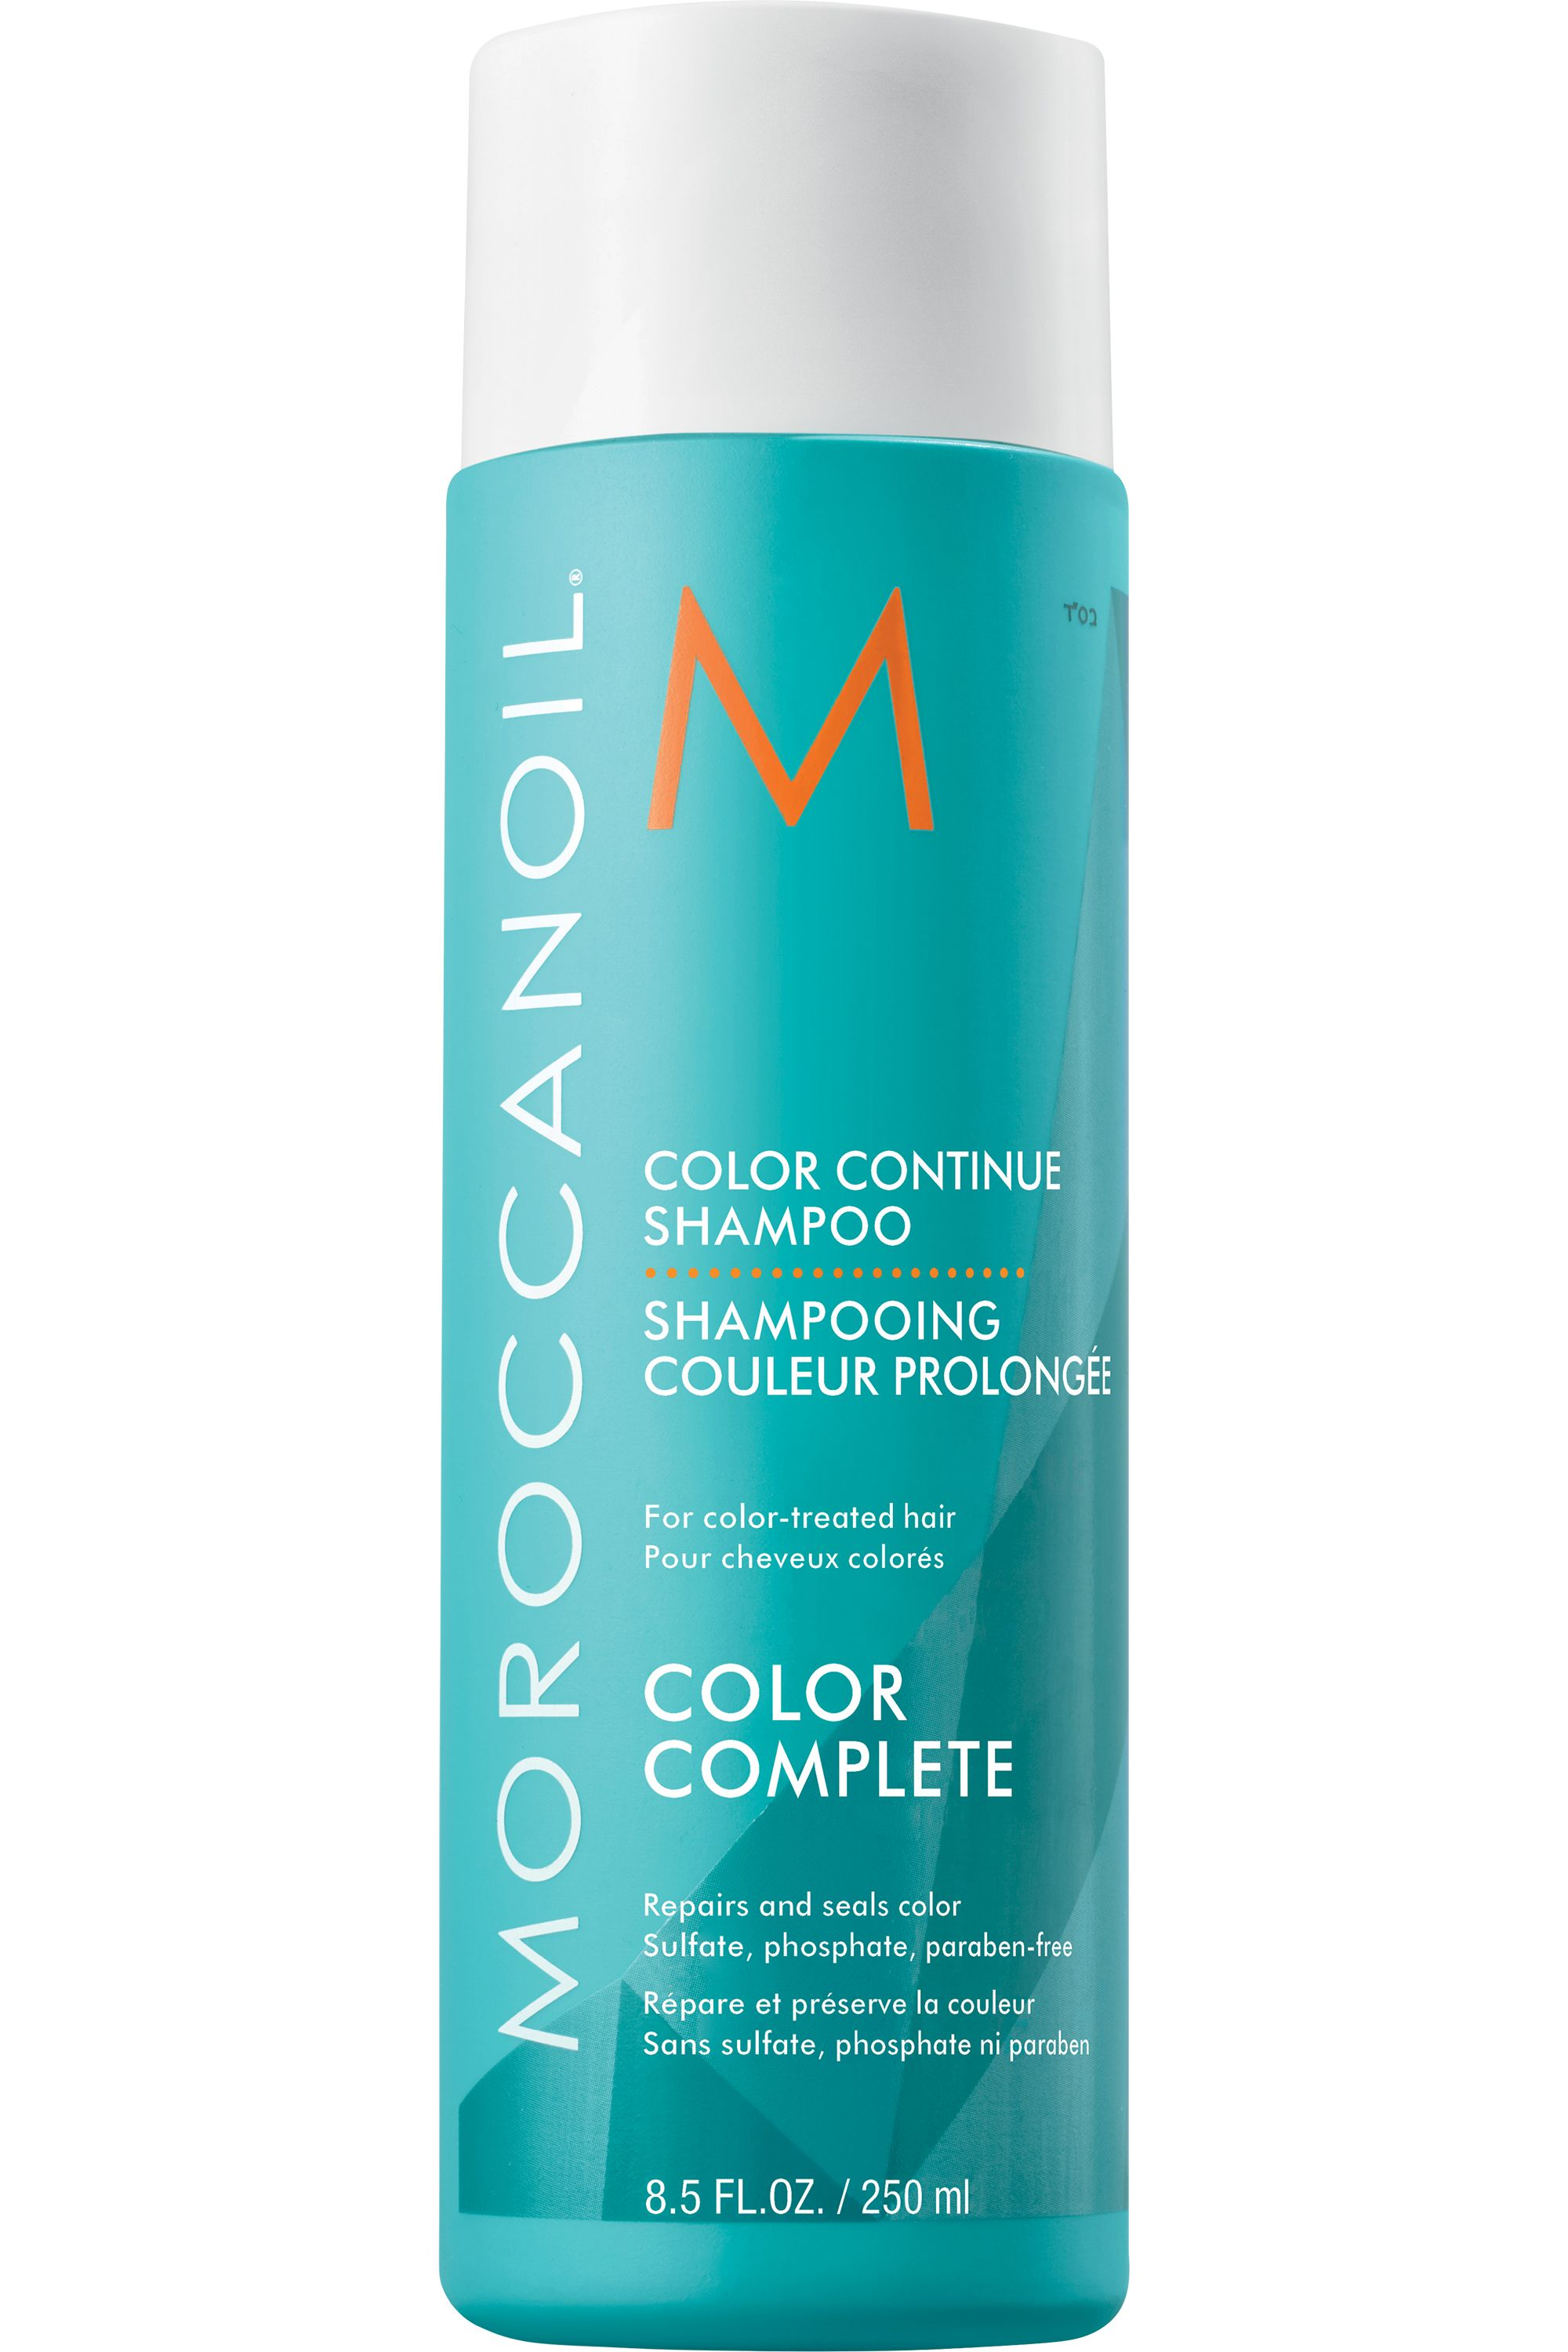 Blissim : Moroccanoil - Shampooing Couleur Prolongée - Shampooing Couleur Prolongée